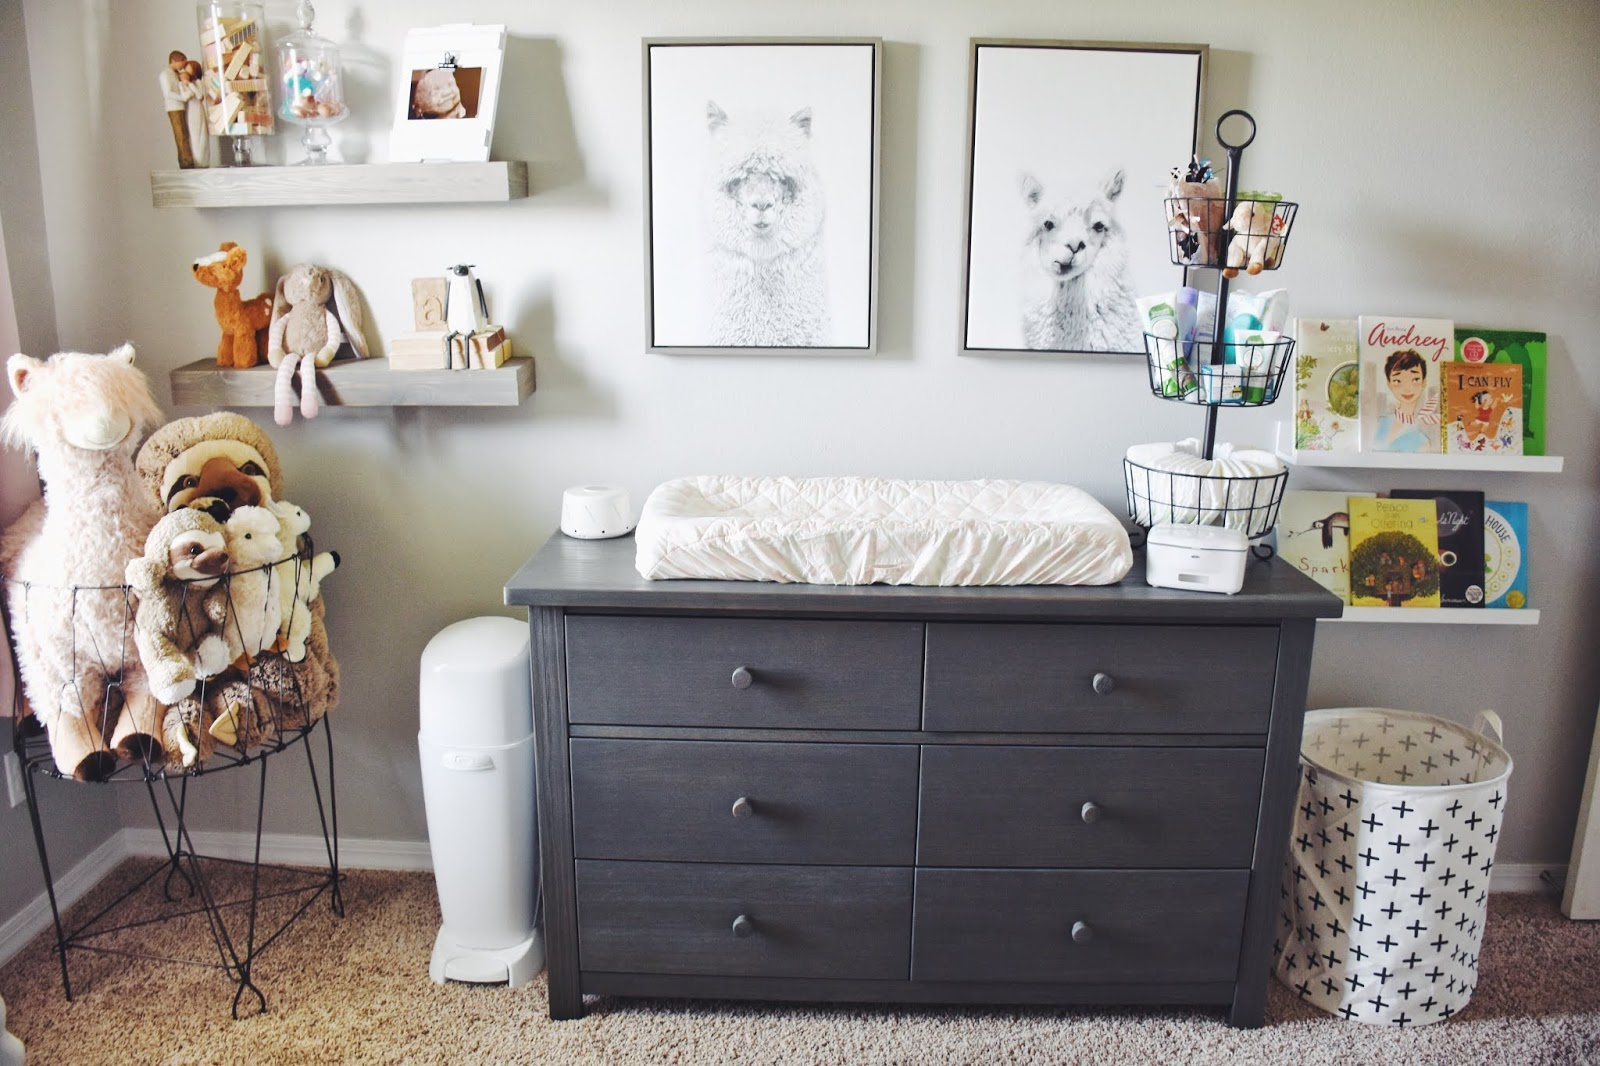 The Simple Things Audrey S Nursery